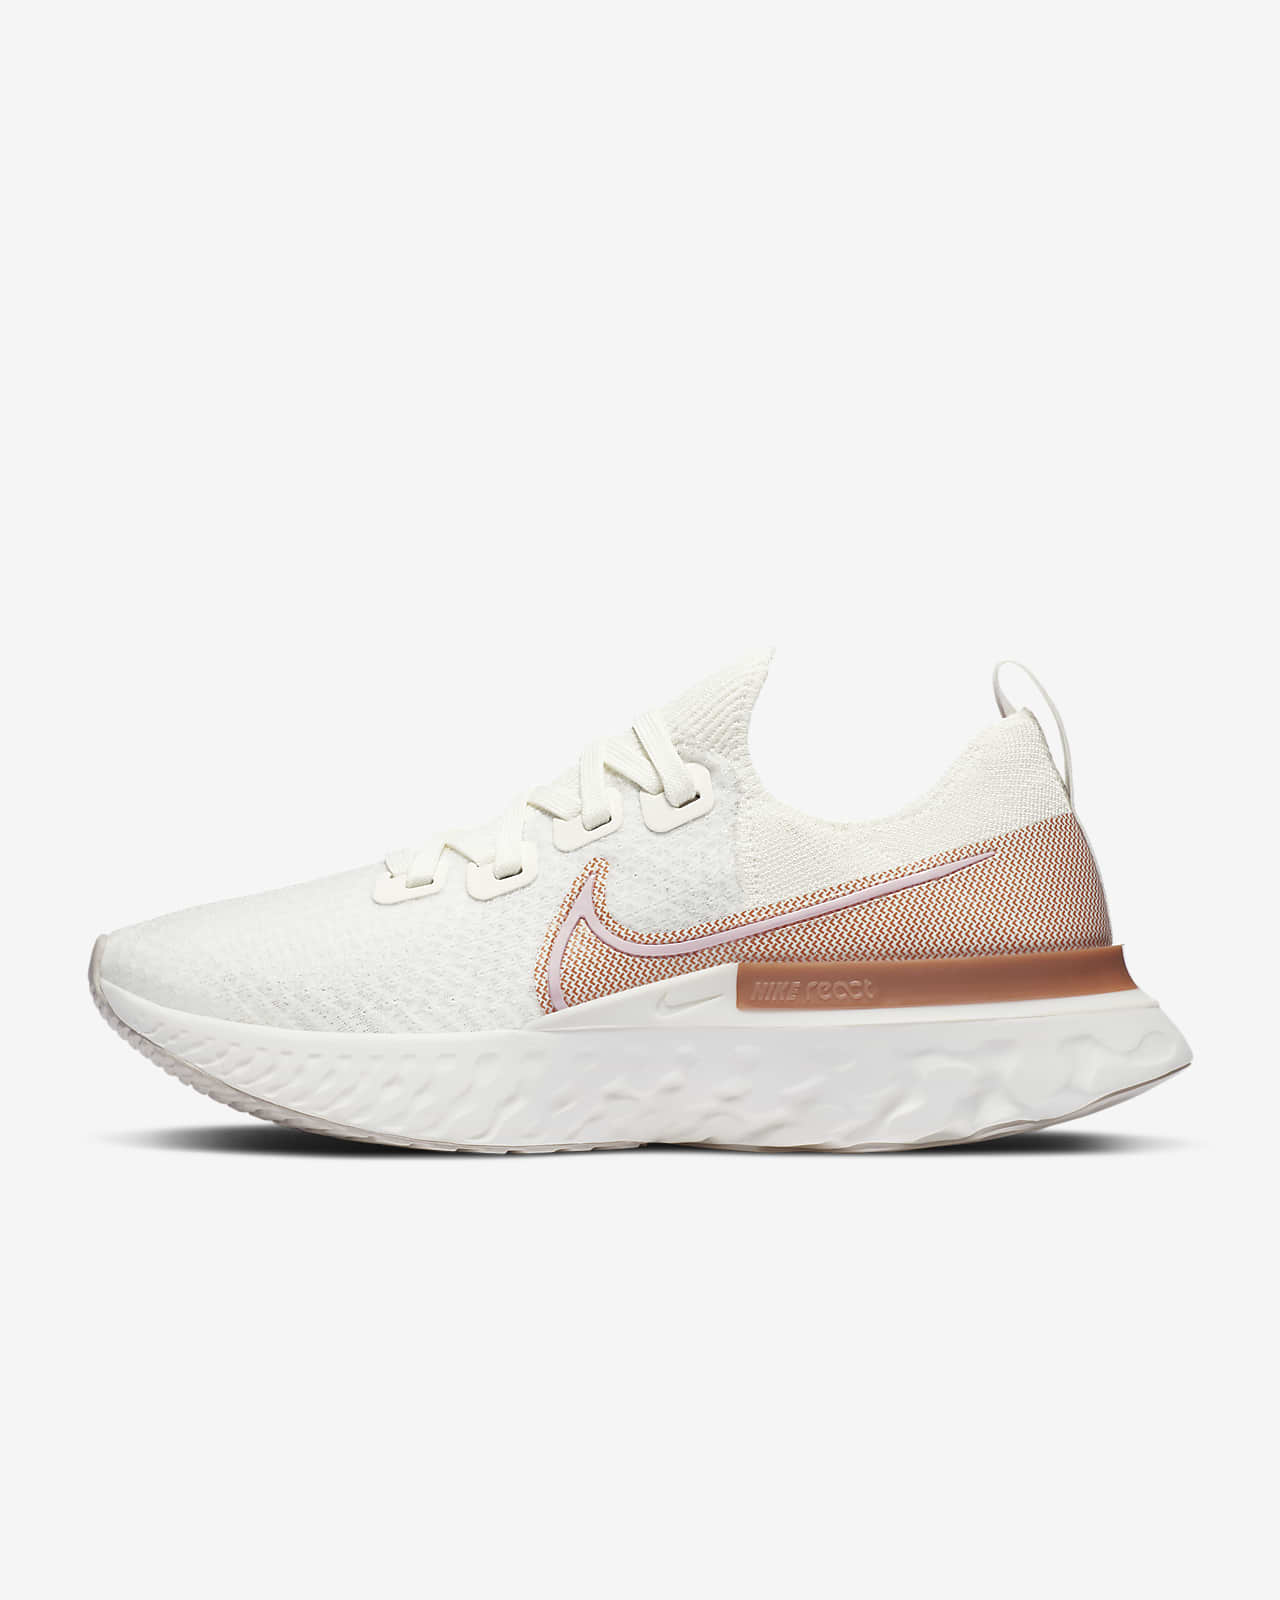 Nike React Infinity Run FK 女子跑步鞋